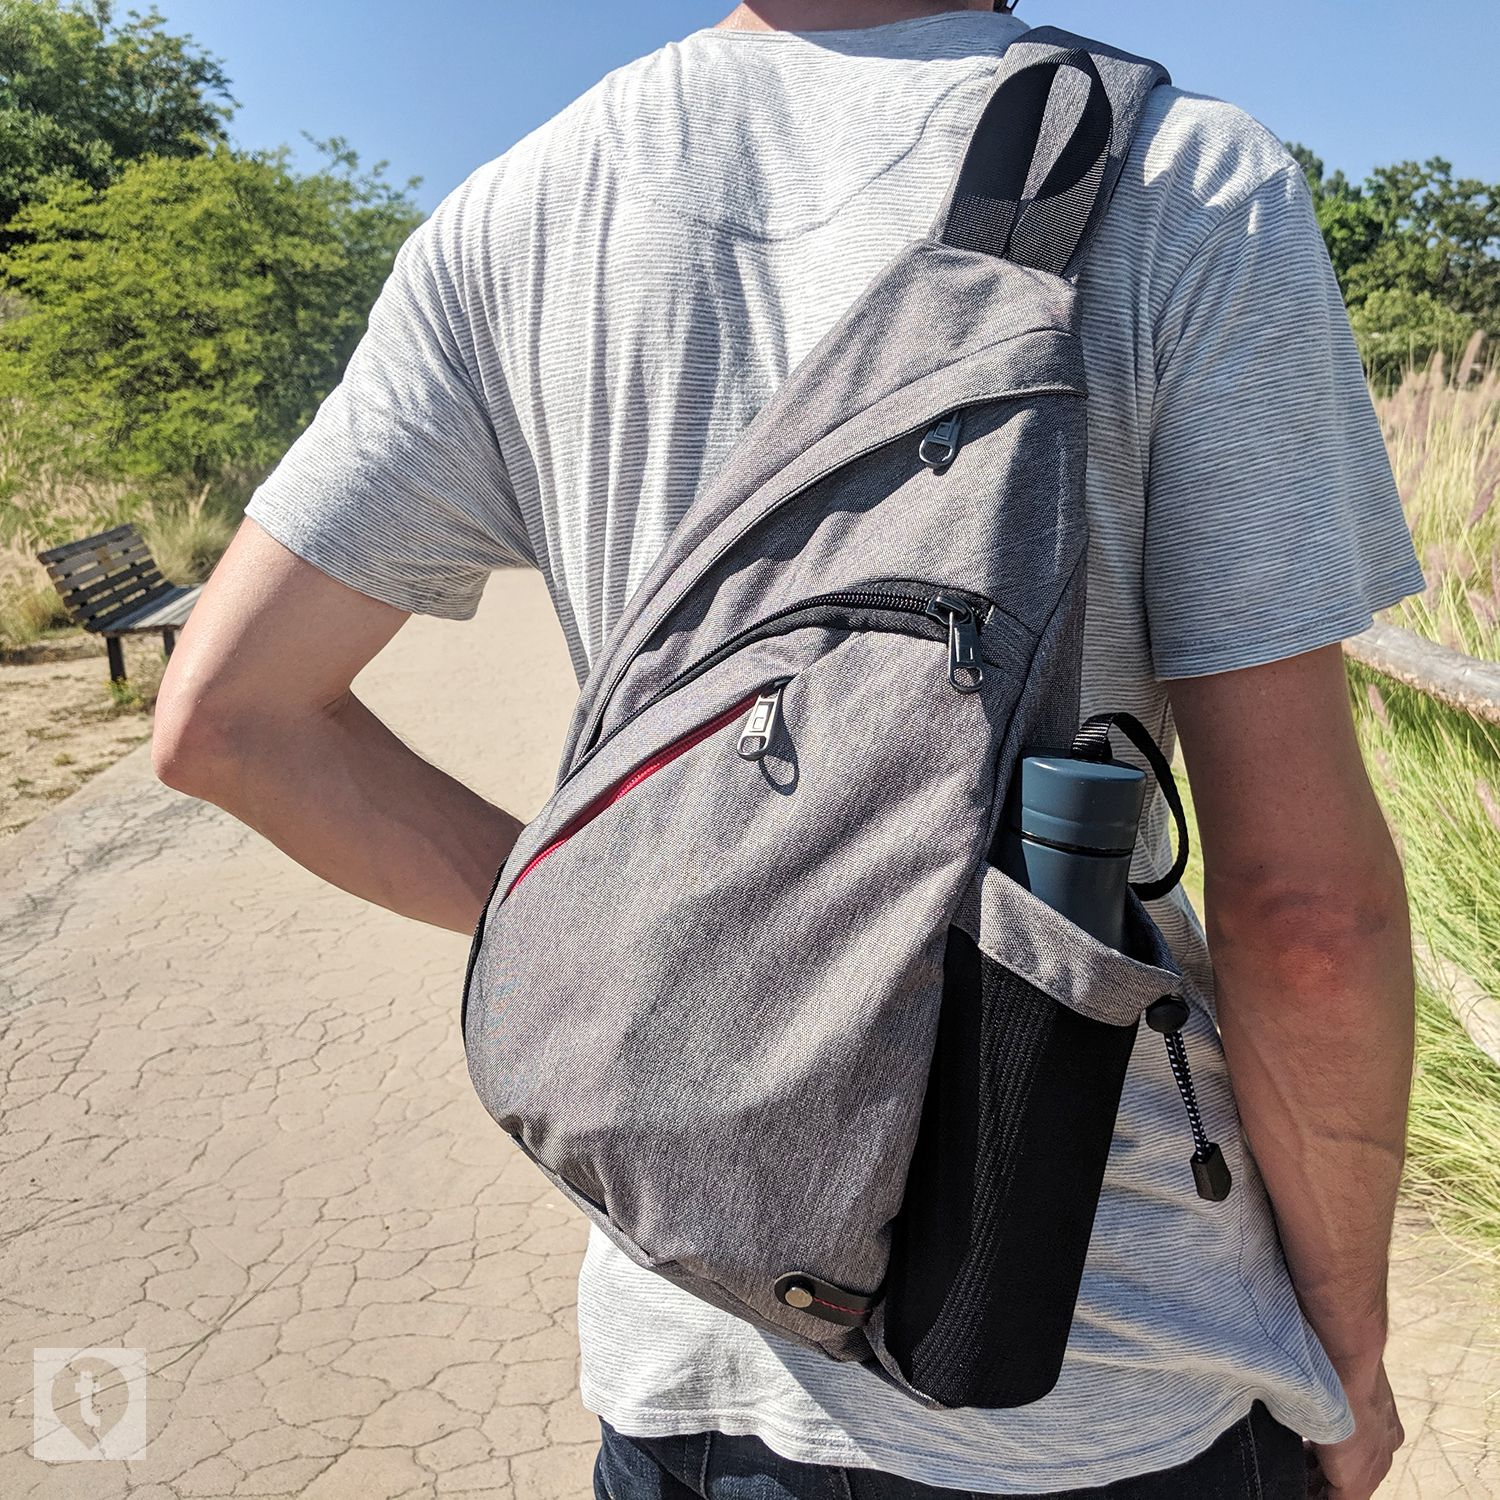 OutdoorMaster Sling Bag Review